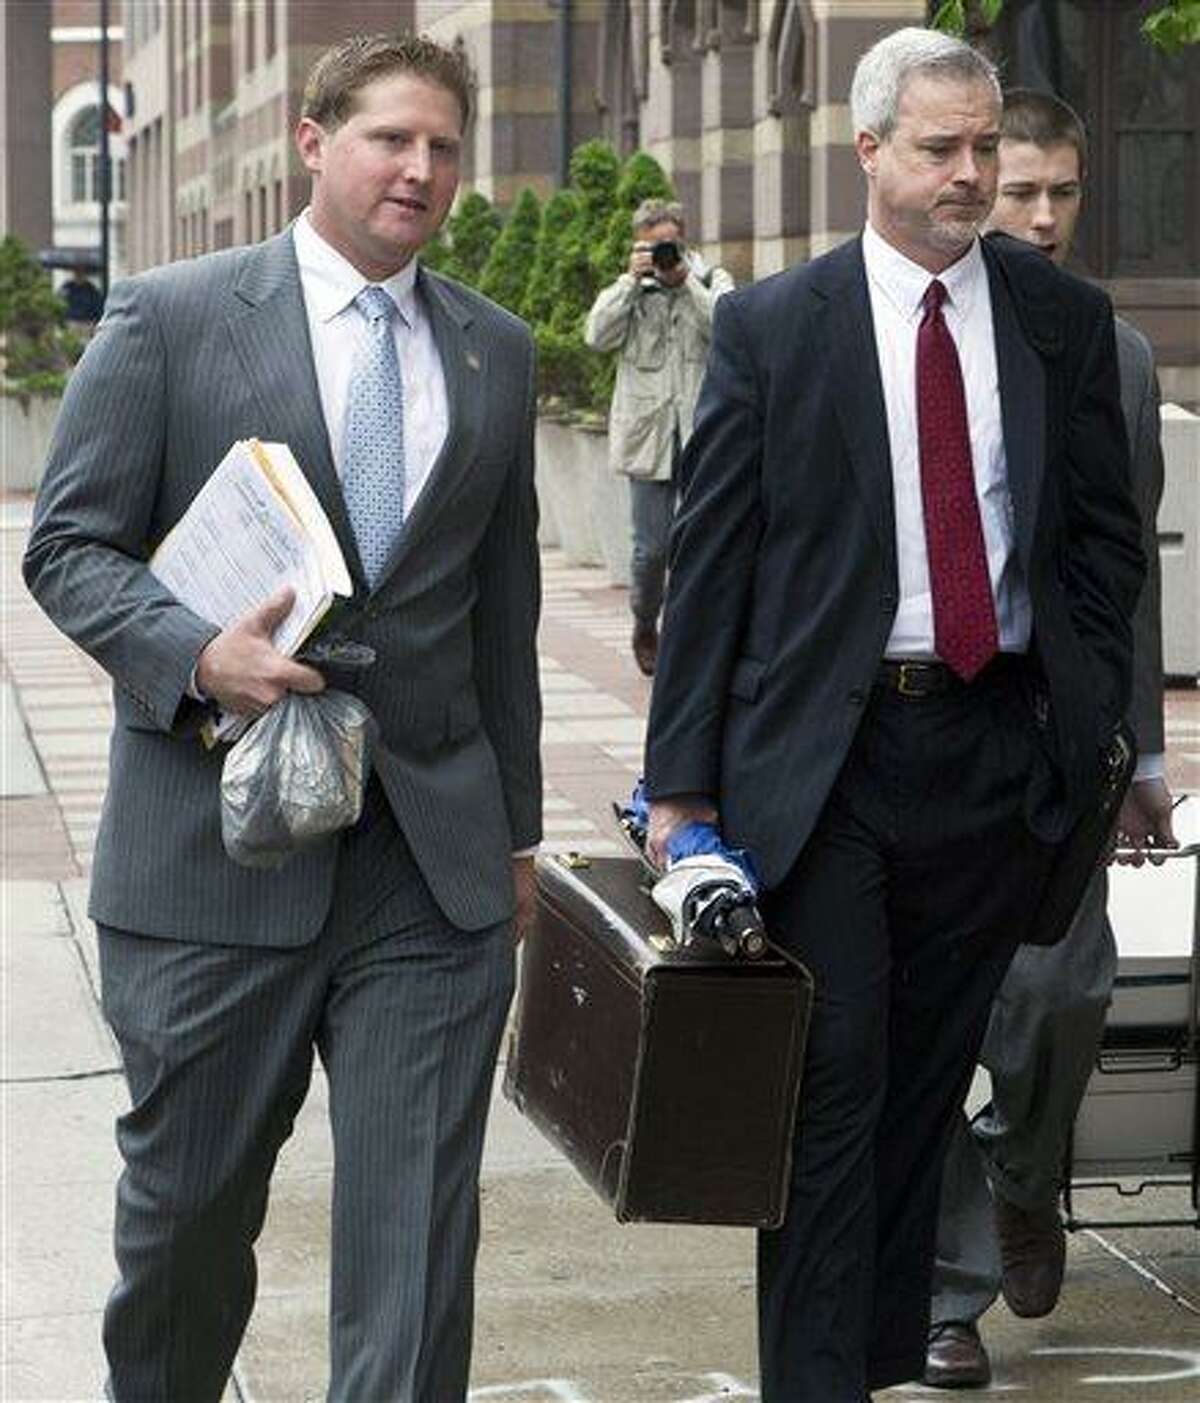 Meriden, Conn., police officer Evan Cossette, left, and his attorney Raymond Hassett arrive at the U.S. Courthouse in New Haven, Conn., Wednesday, May 29, 2013, for the second day of his trial. Cossette, the son of Meriden Police Chief Jeffry Cossette, is accused of brutality by shoving a handcuffed man in the police department lockup in 2010. (AP Photo/Record-Journal, Christopher Zajac)